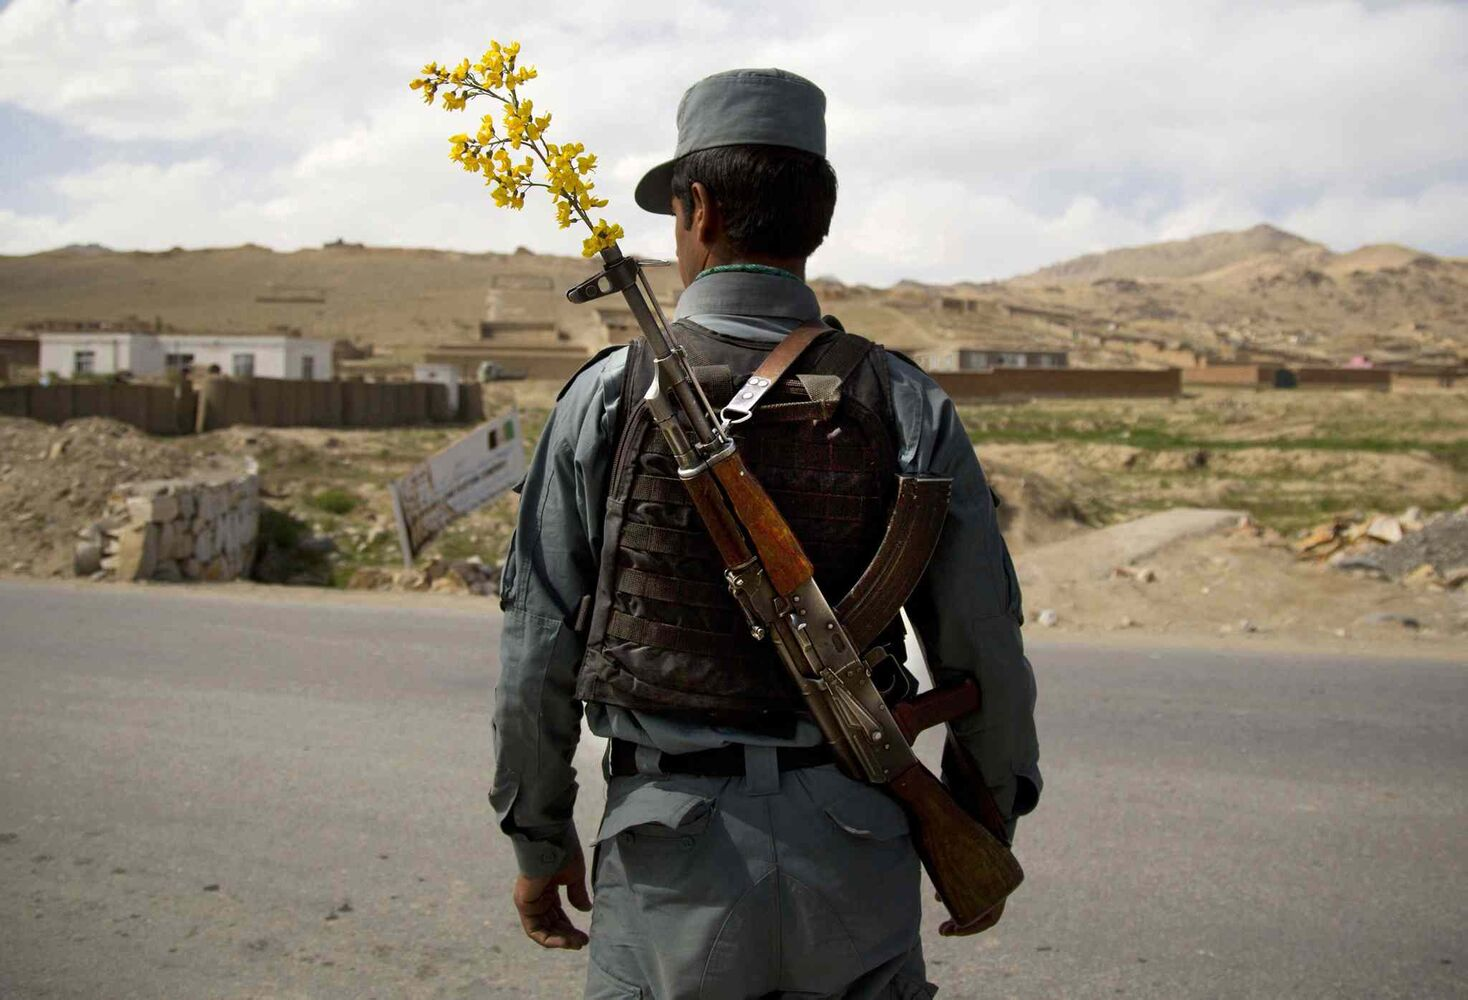 May 15, 2013: An Afghan National Police officer mans a checkpoint in the outskirts of Maidan Shahr, Wardak province, Afghanistan.  (Anja Niedringhaus / The Associated Press)